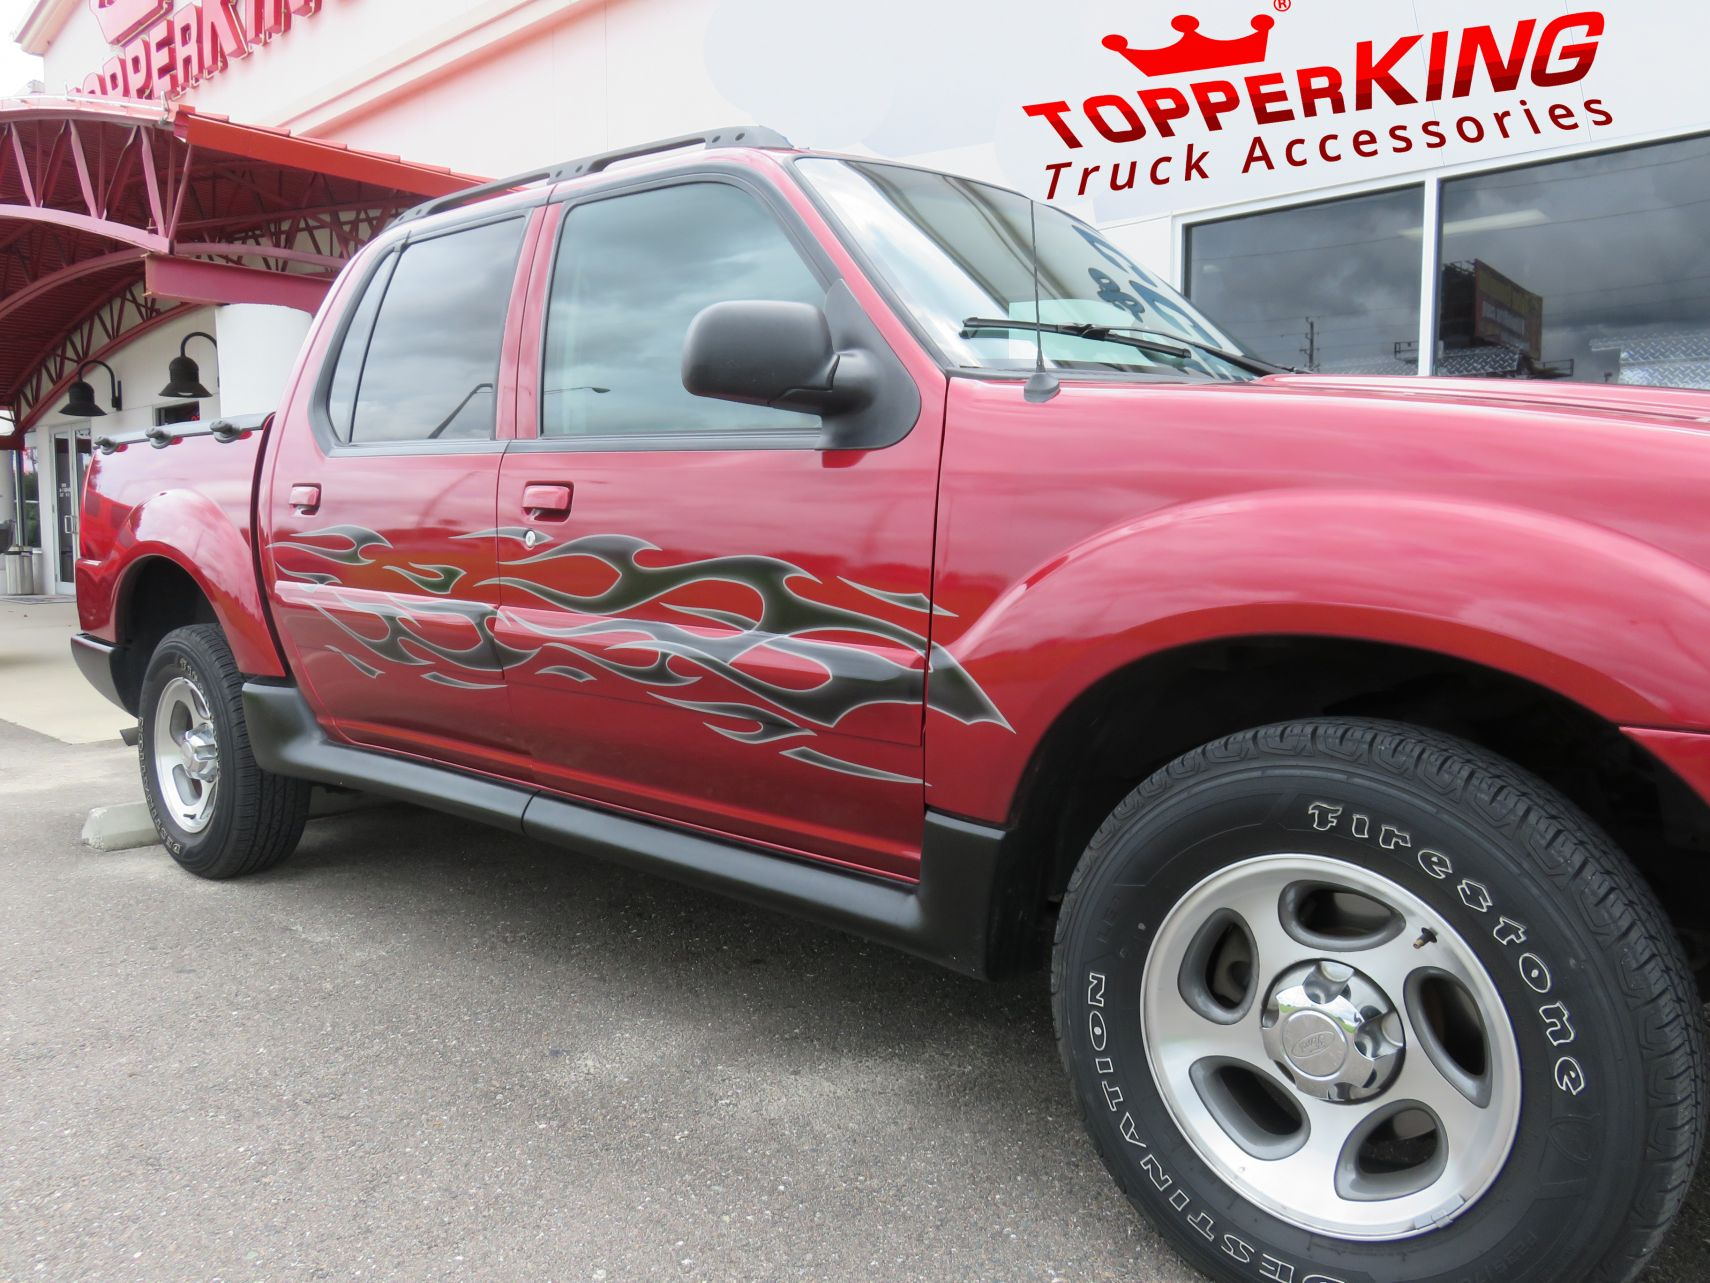 Ford Explorer Sport Tracsmokin' hot graphics by TopperKING in Brandon, FL 813-689-2449 Call today to start on your truck!